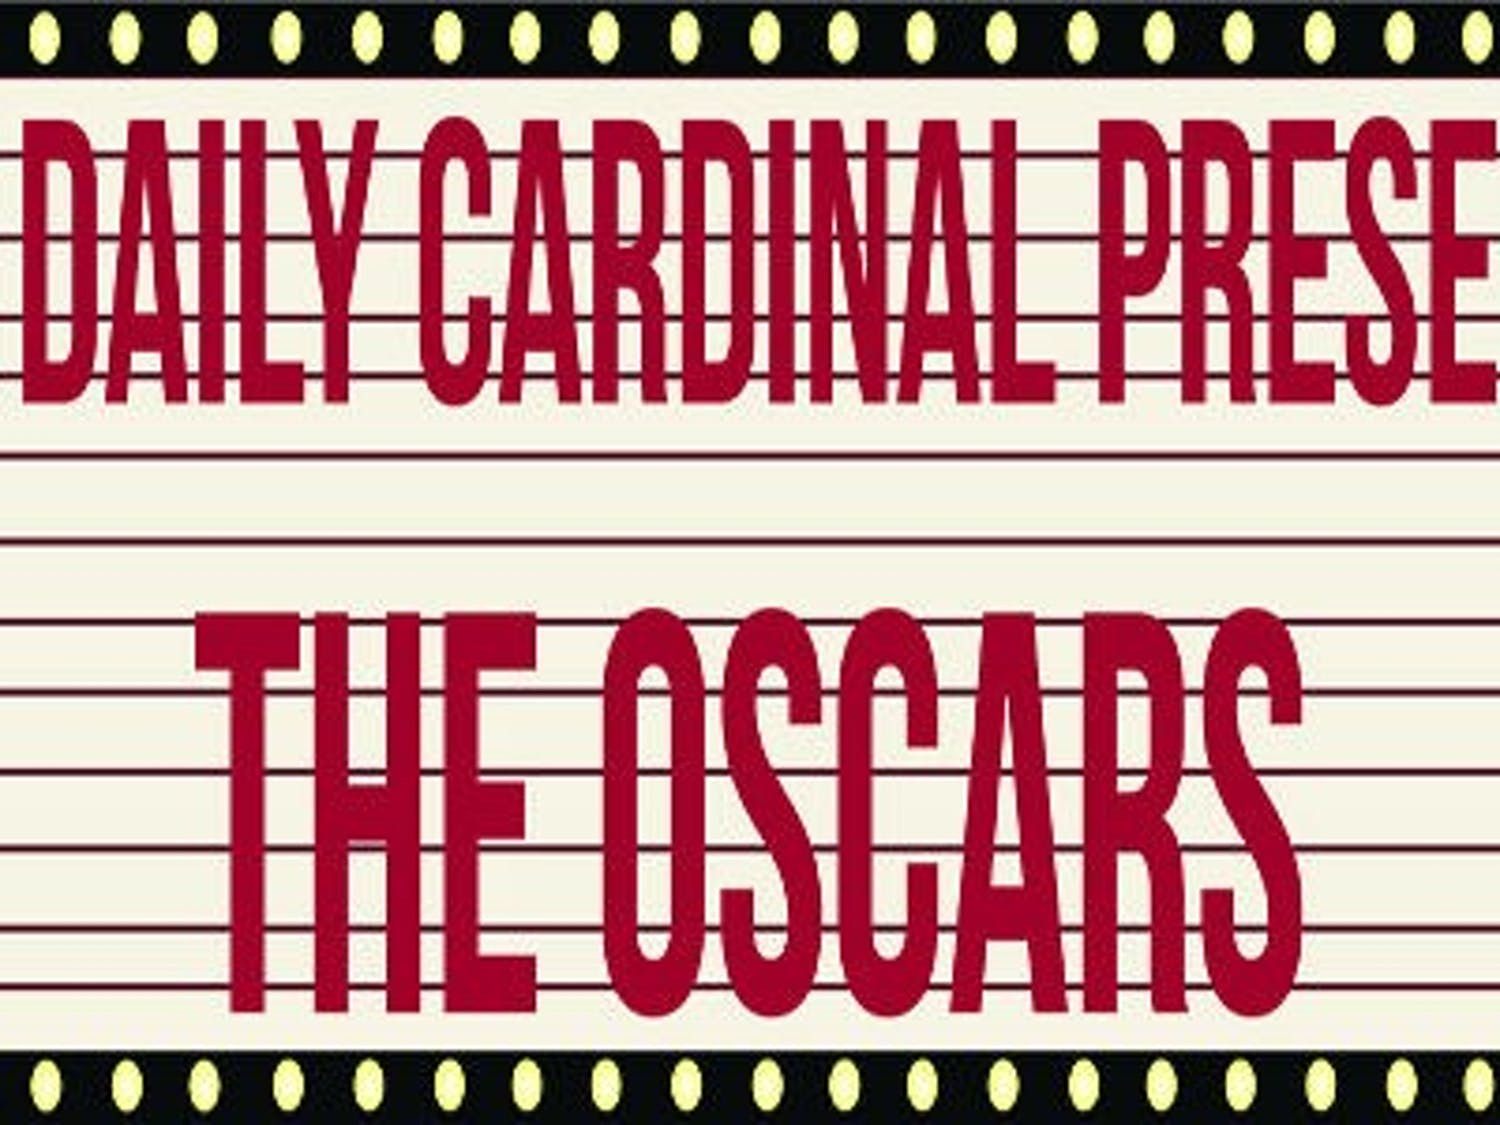 The Daily Cardinal Presents